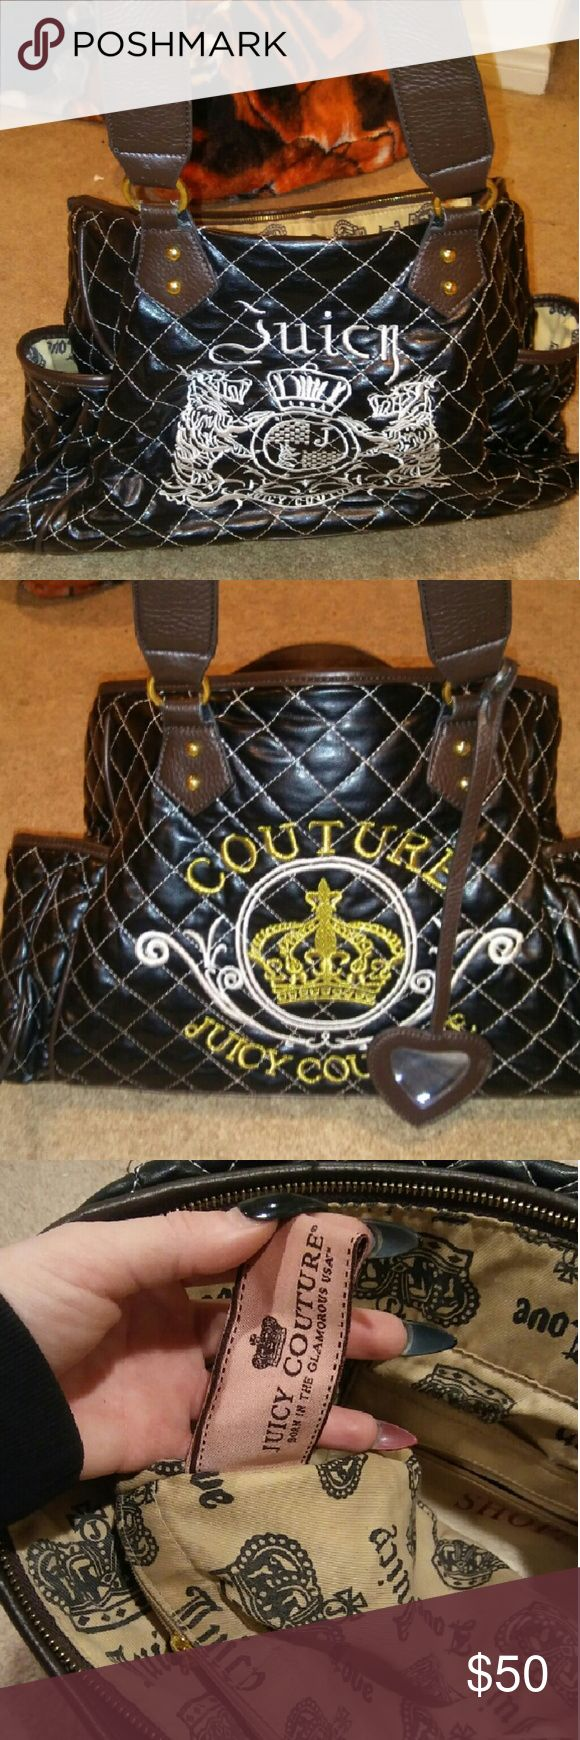 Juicy Couture Purse Brown with cute crown design and juicy name on front in gold lettering as well as the back of purse but with white lettering. Good condition Juicy Couture Bags Shoulder Bags